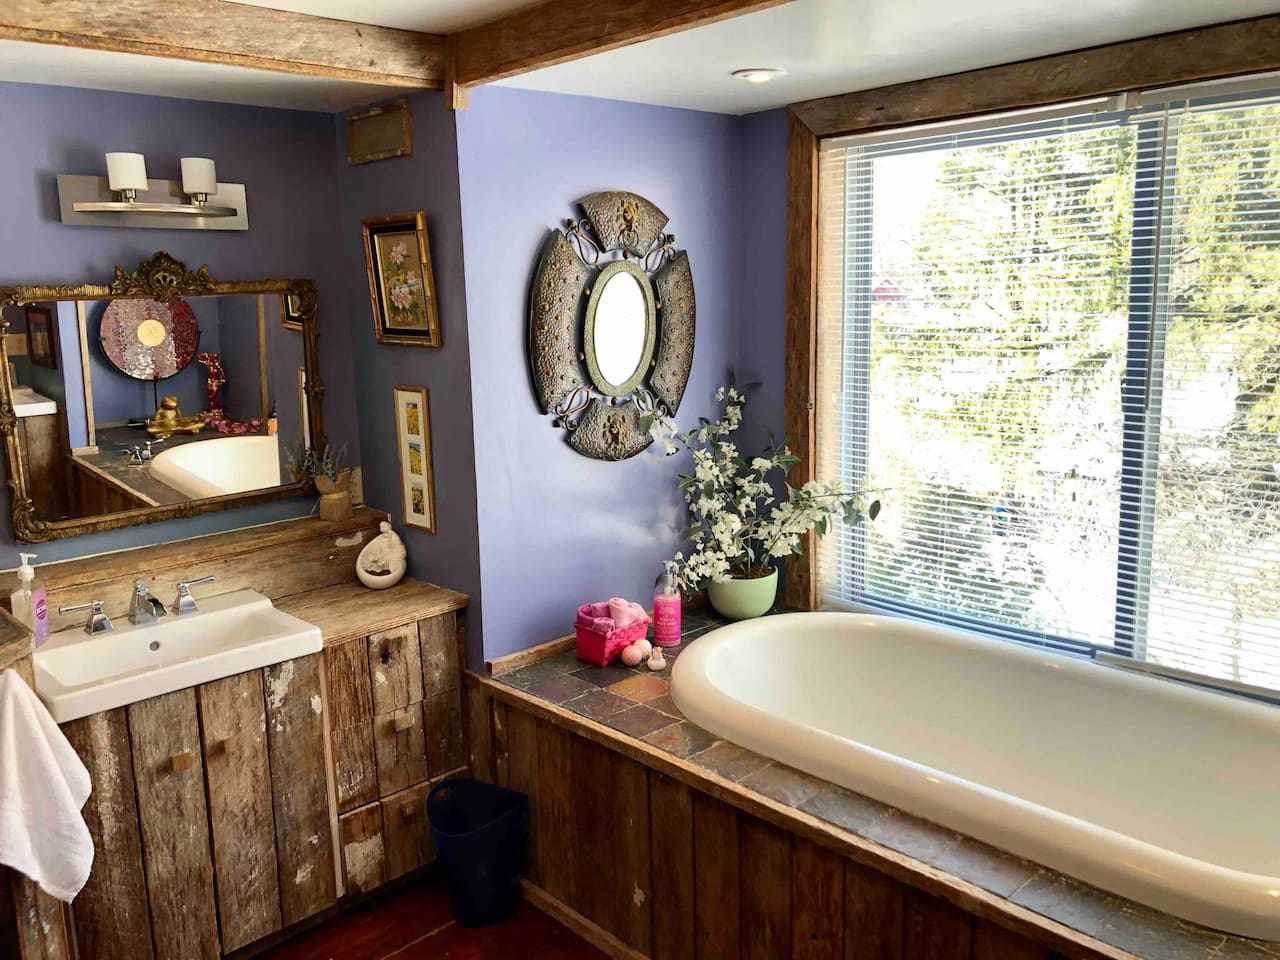 Luxurious bathroom with two person soaker tub